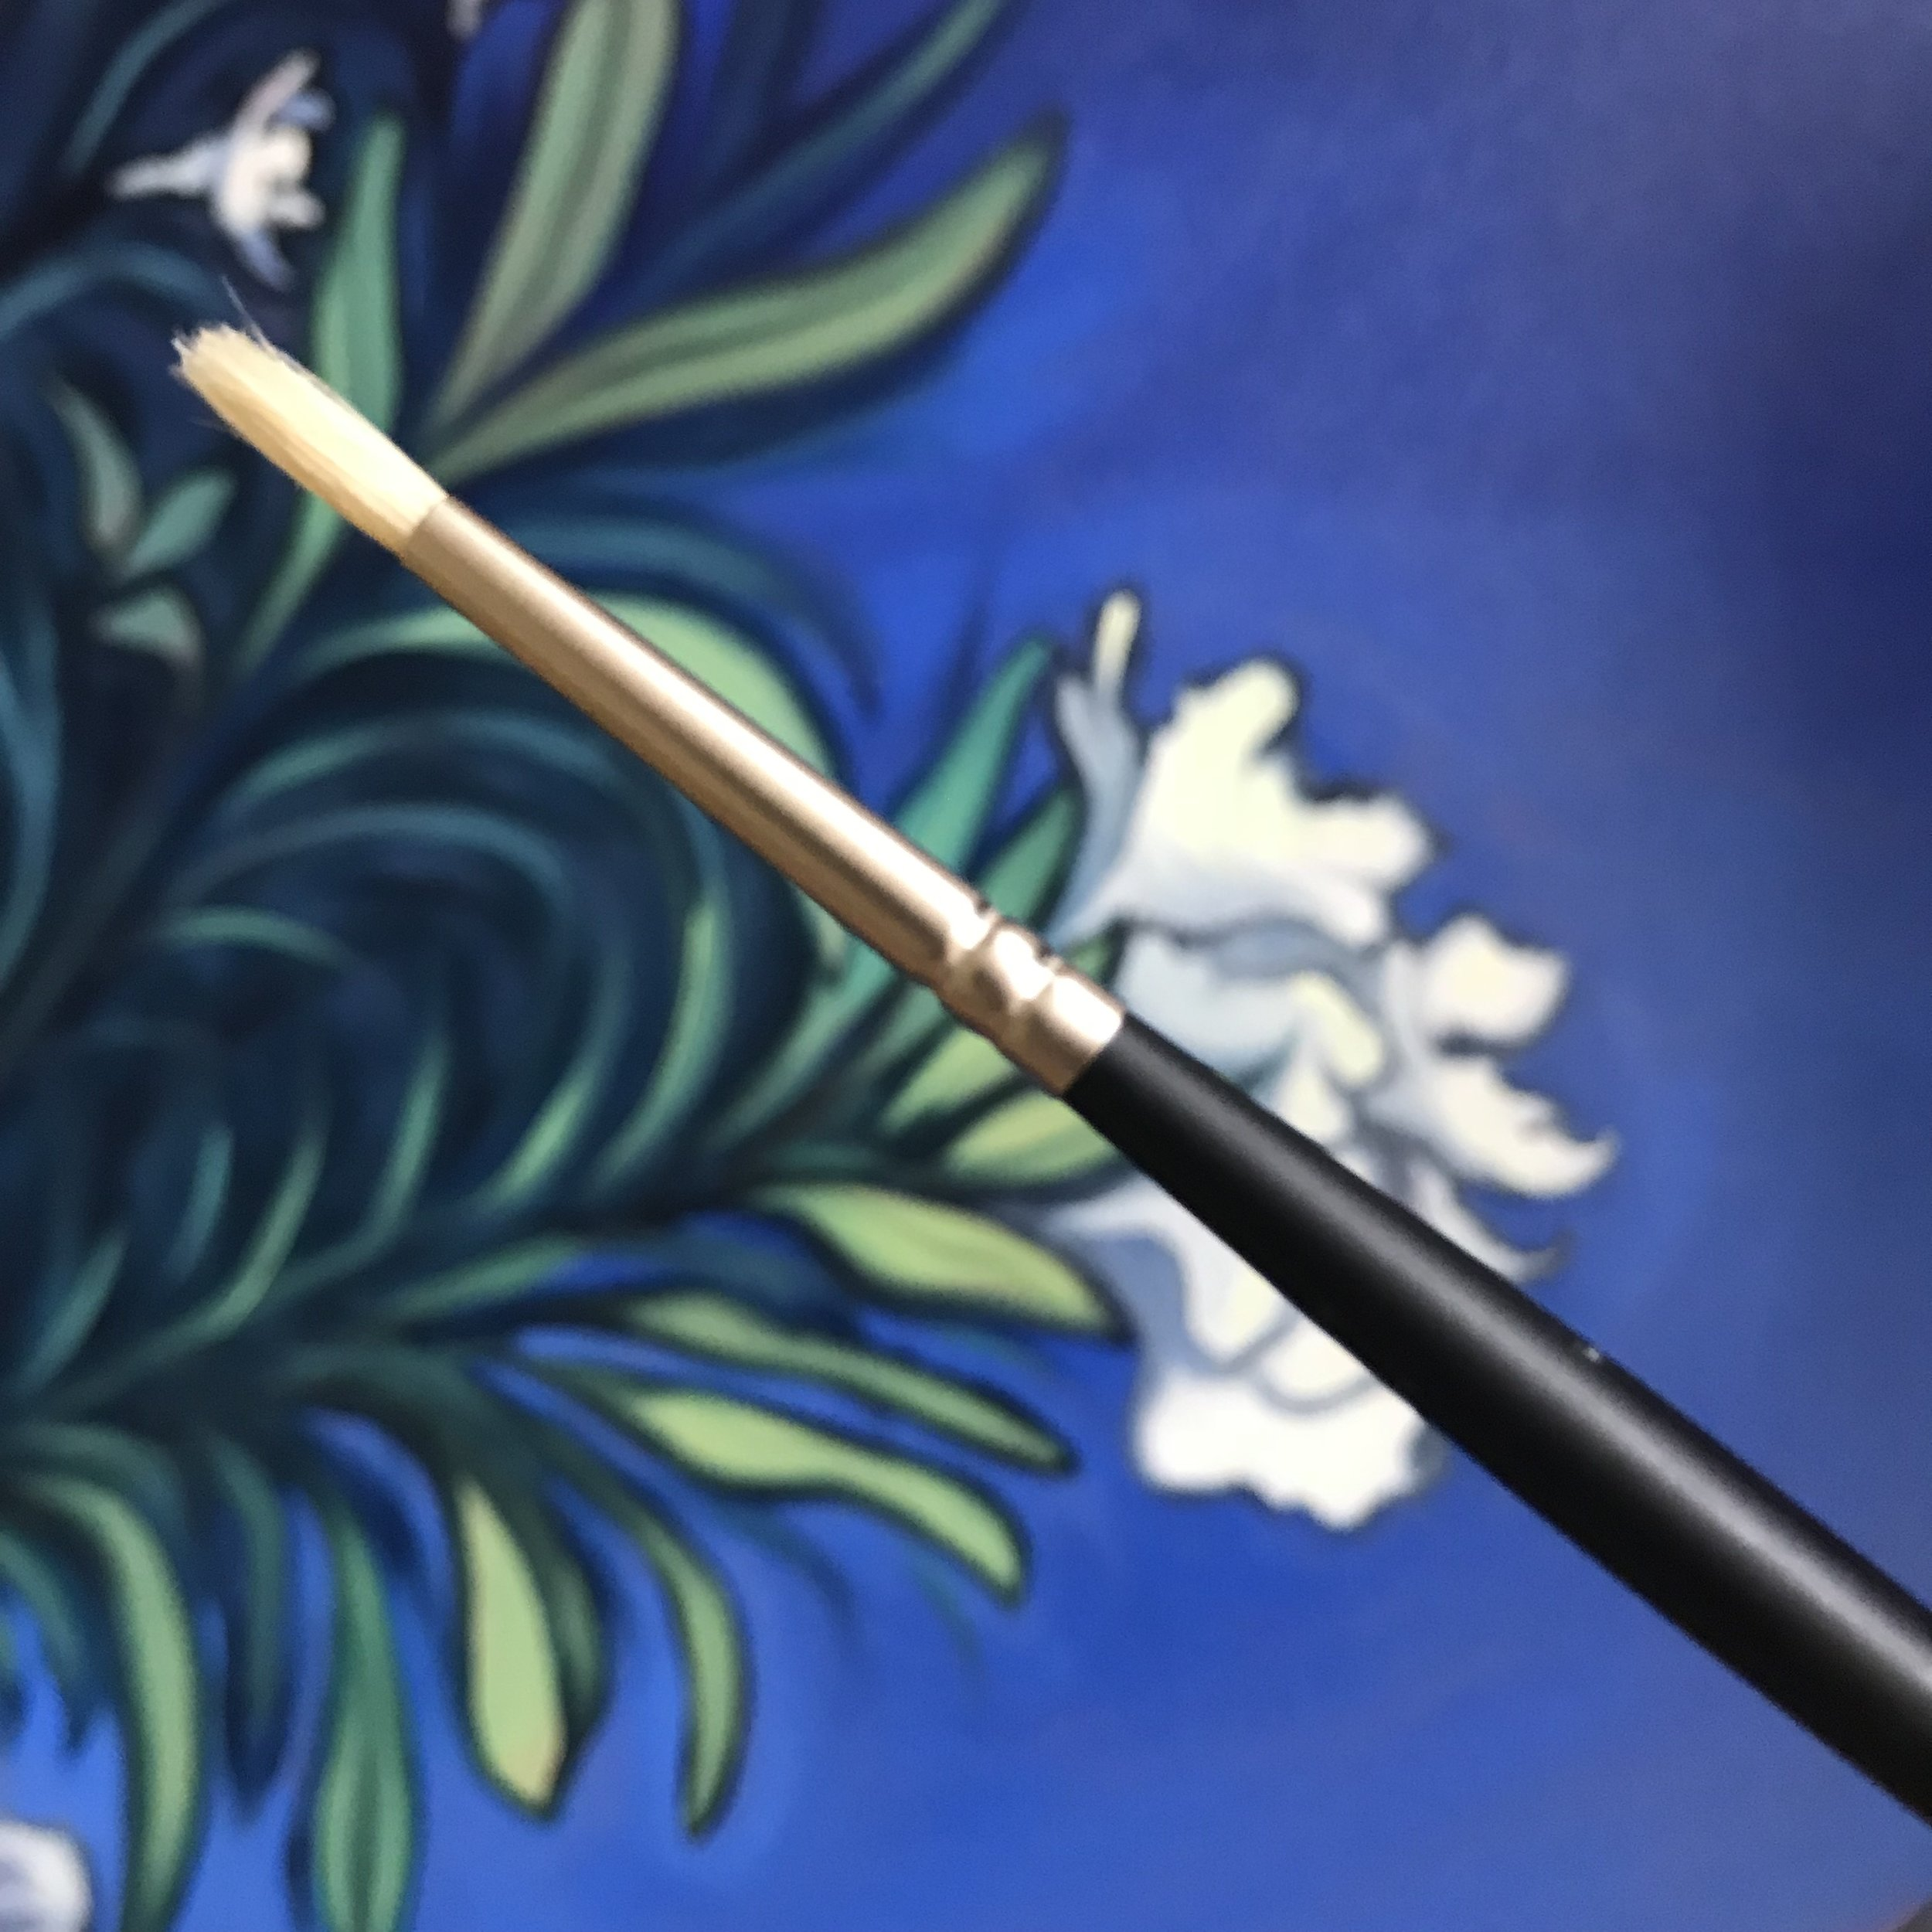 #1 round oil brush for small details, the first purchase of my recent Creative Pinellas Emerging Artist Grant!